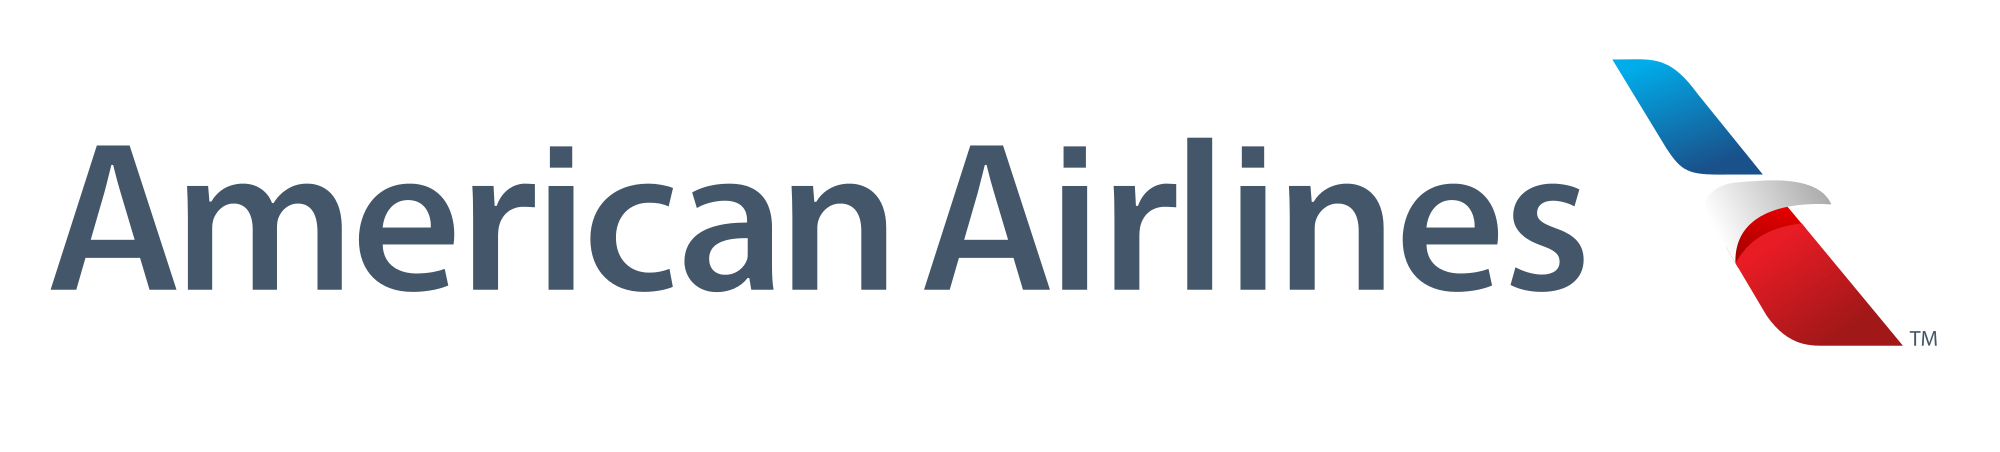 American Airlines animali